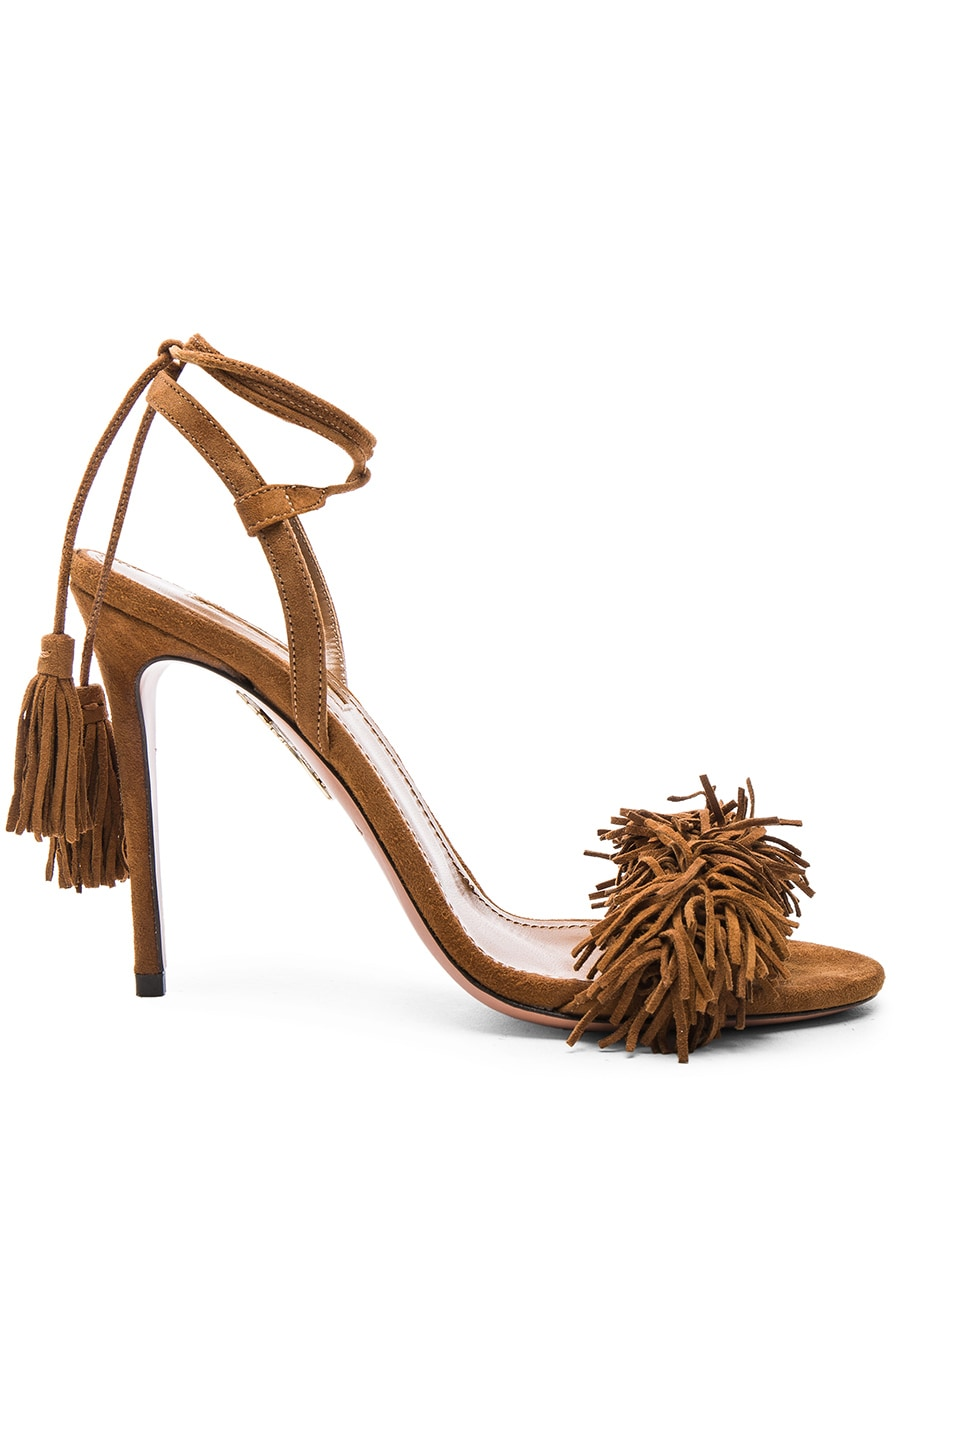 Image 1 of Aquazzura Wild Thing Suede Heels in Cognac